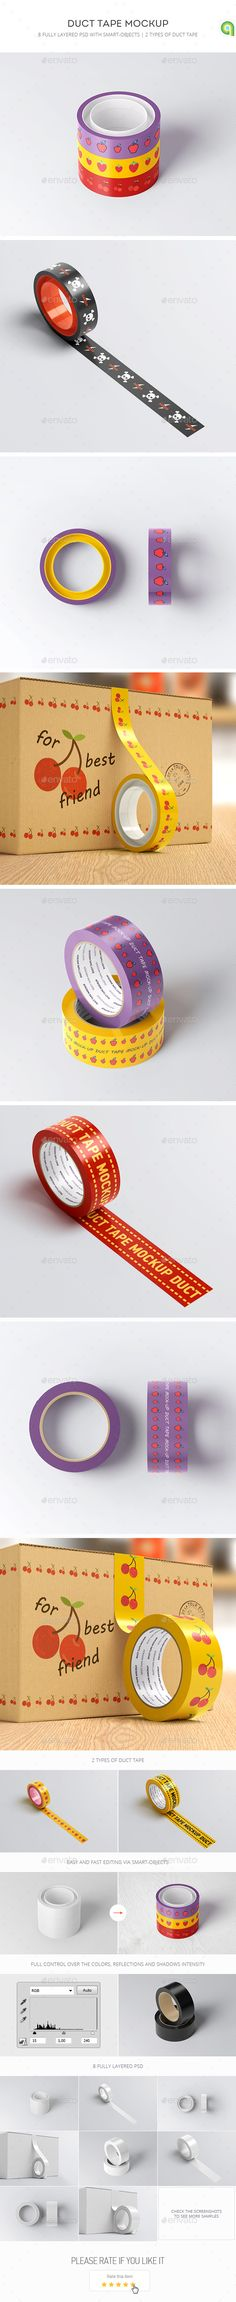 Duct Tape Mock-up. Download here: https://graphicriver.net/item/duct-tape-mockup/17375525?ref=ksioks